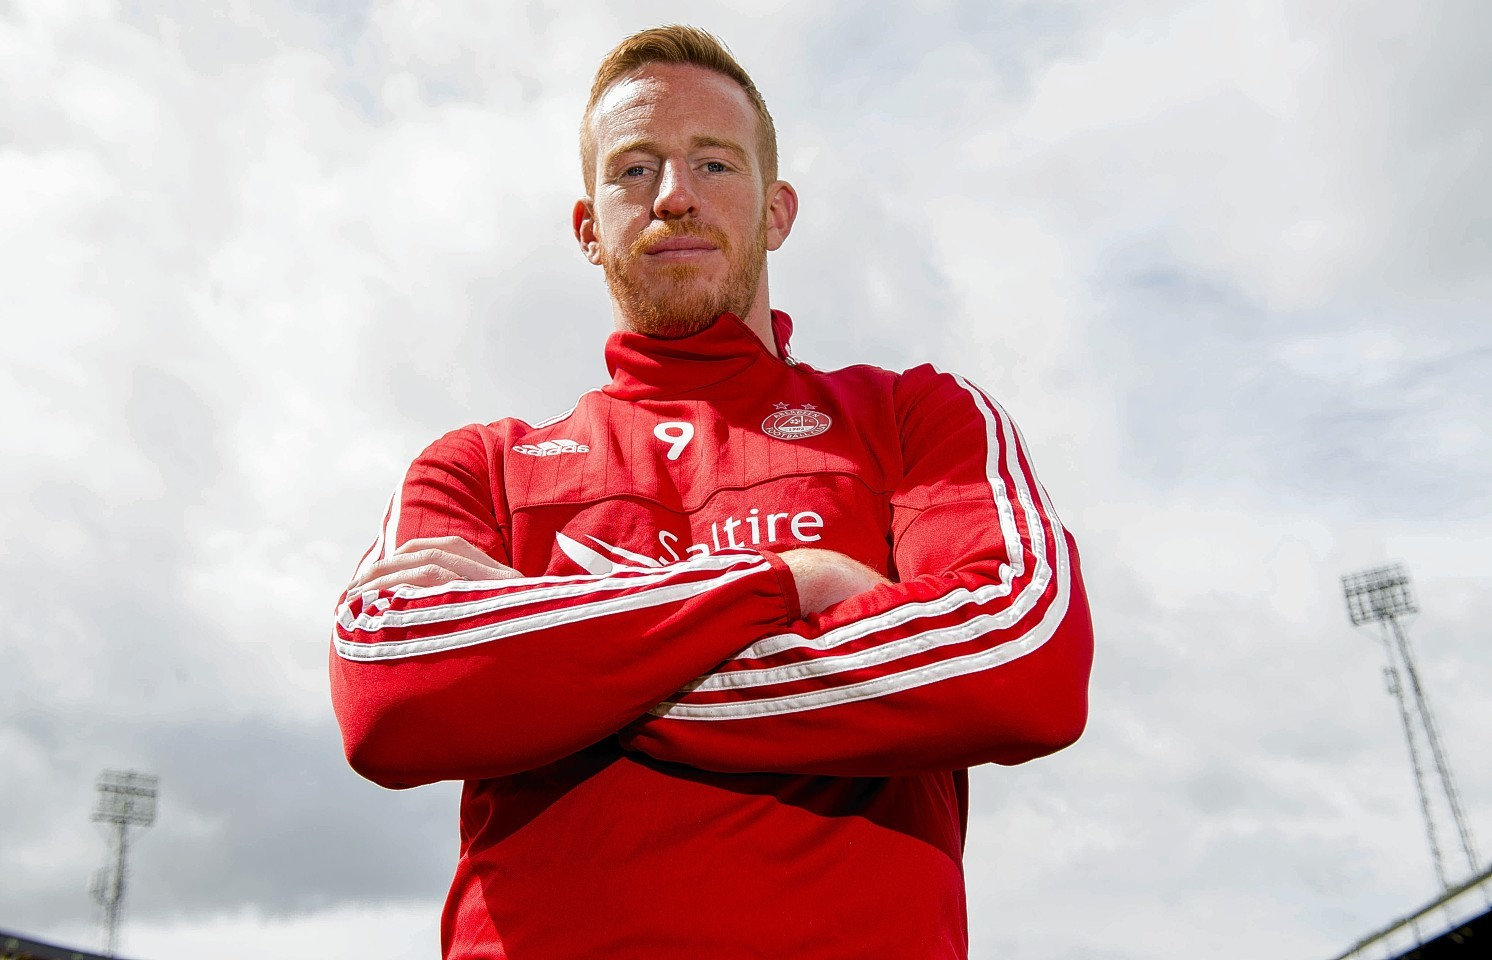 Adam Rooney took to Twitter to announce his news